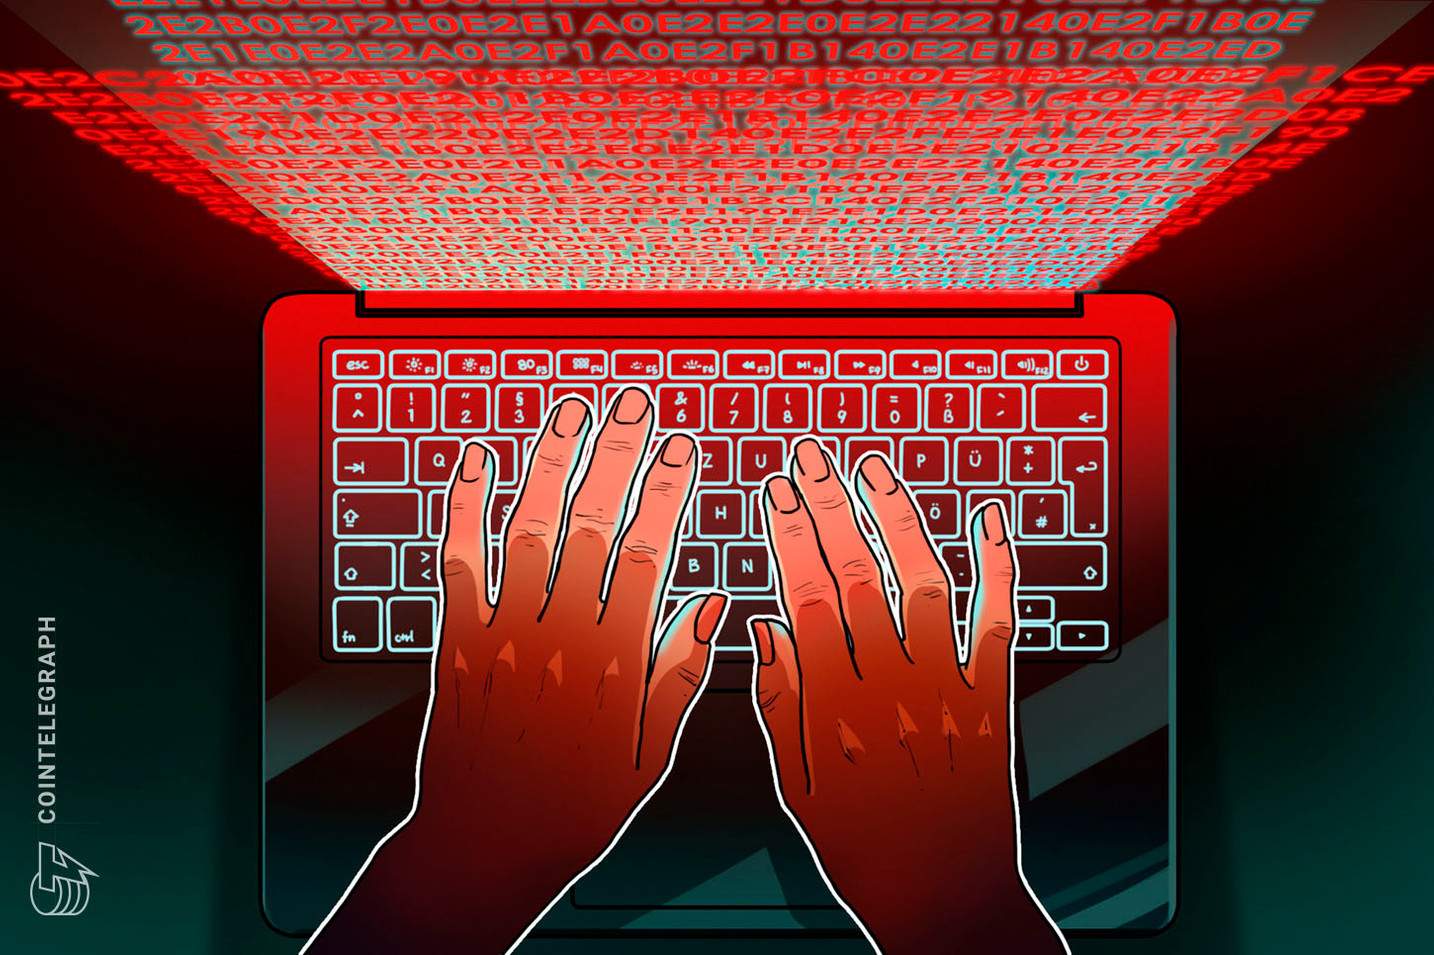 New Ransomware Uses Sophisticated Evasion Techniques